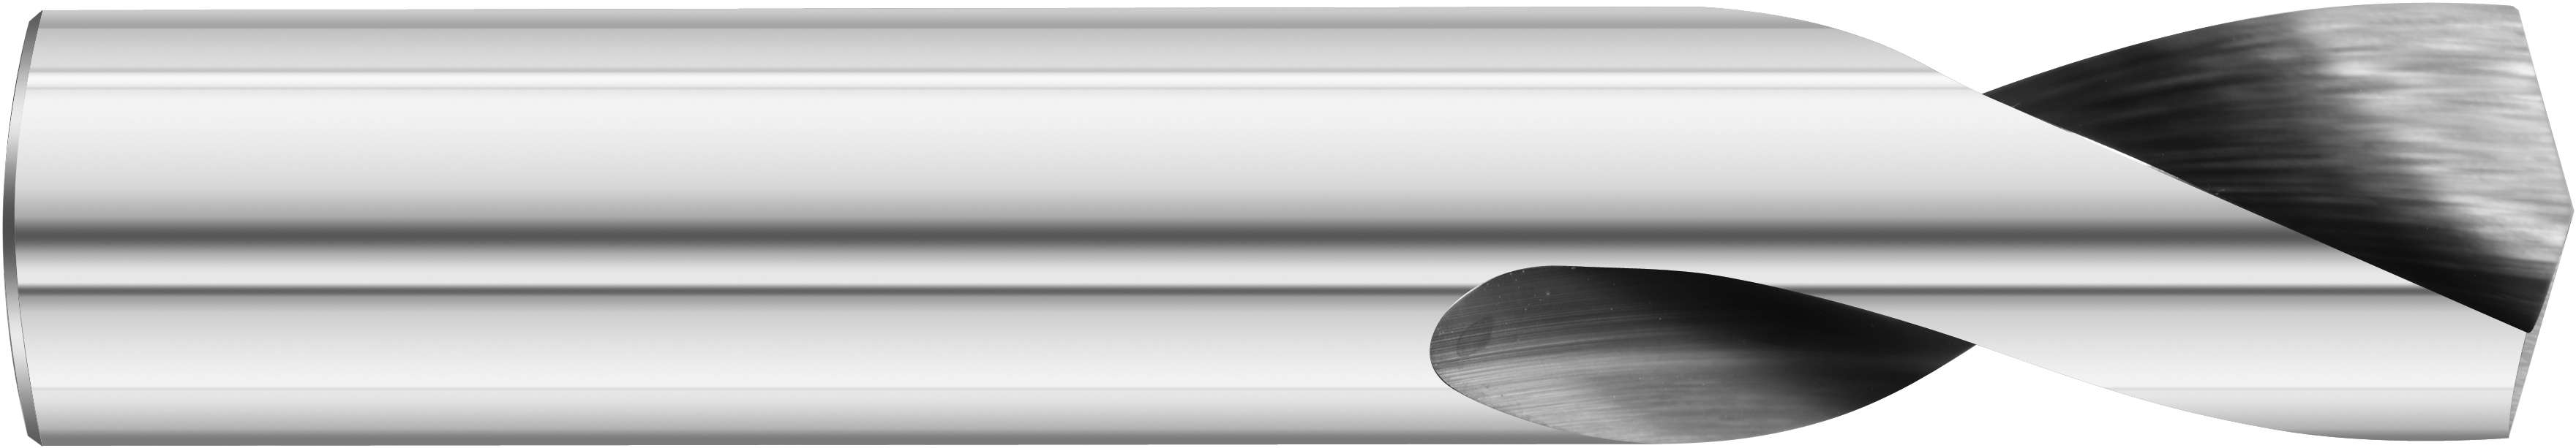 5/16 Solid Carbide Nc Spotting Dril 3xd Length Cam Relieved Se – 15778